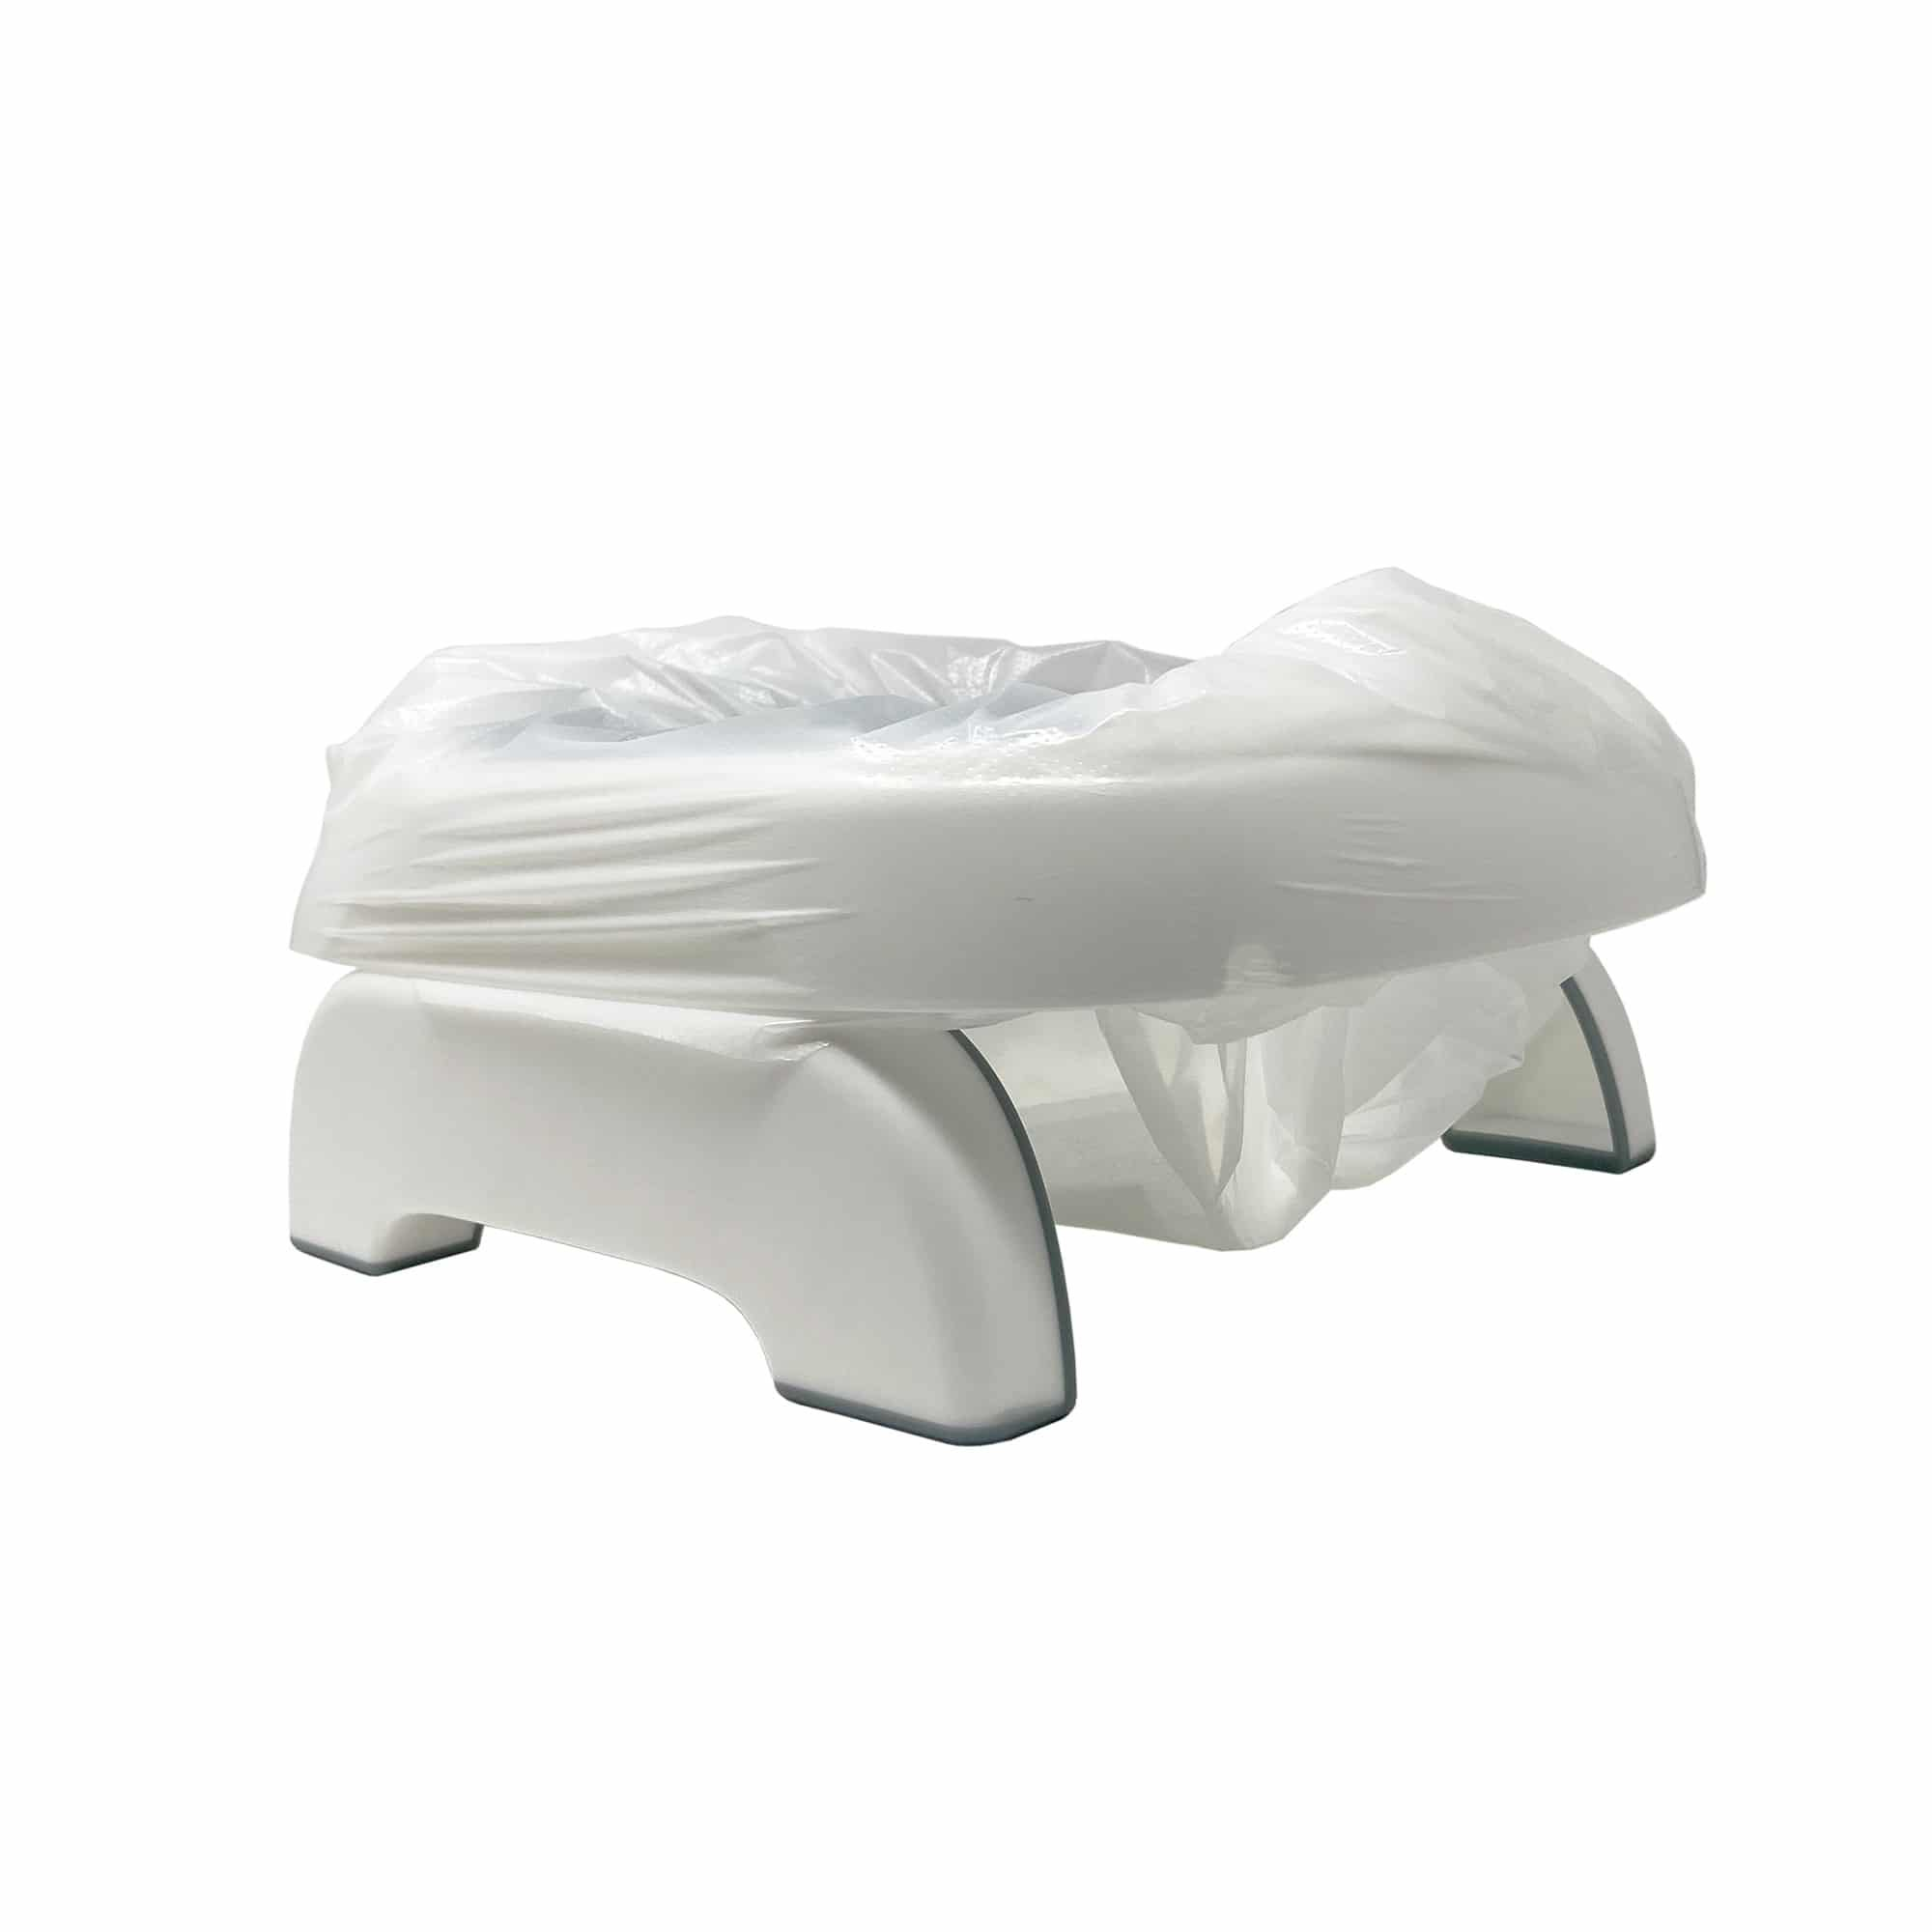 Pote Plus travel potty with liner inserted